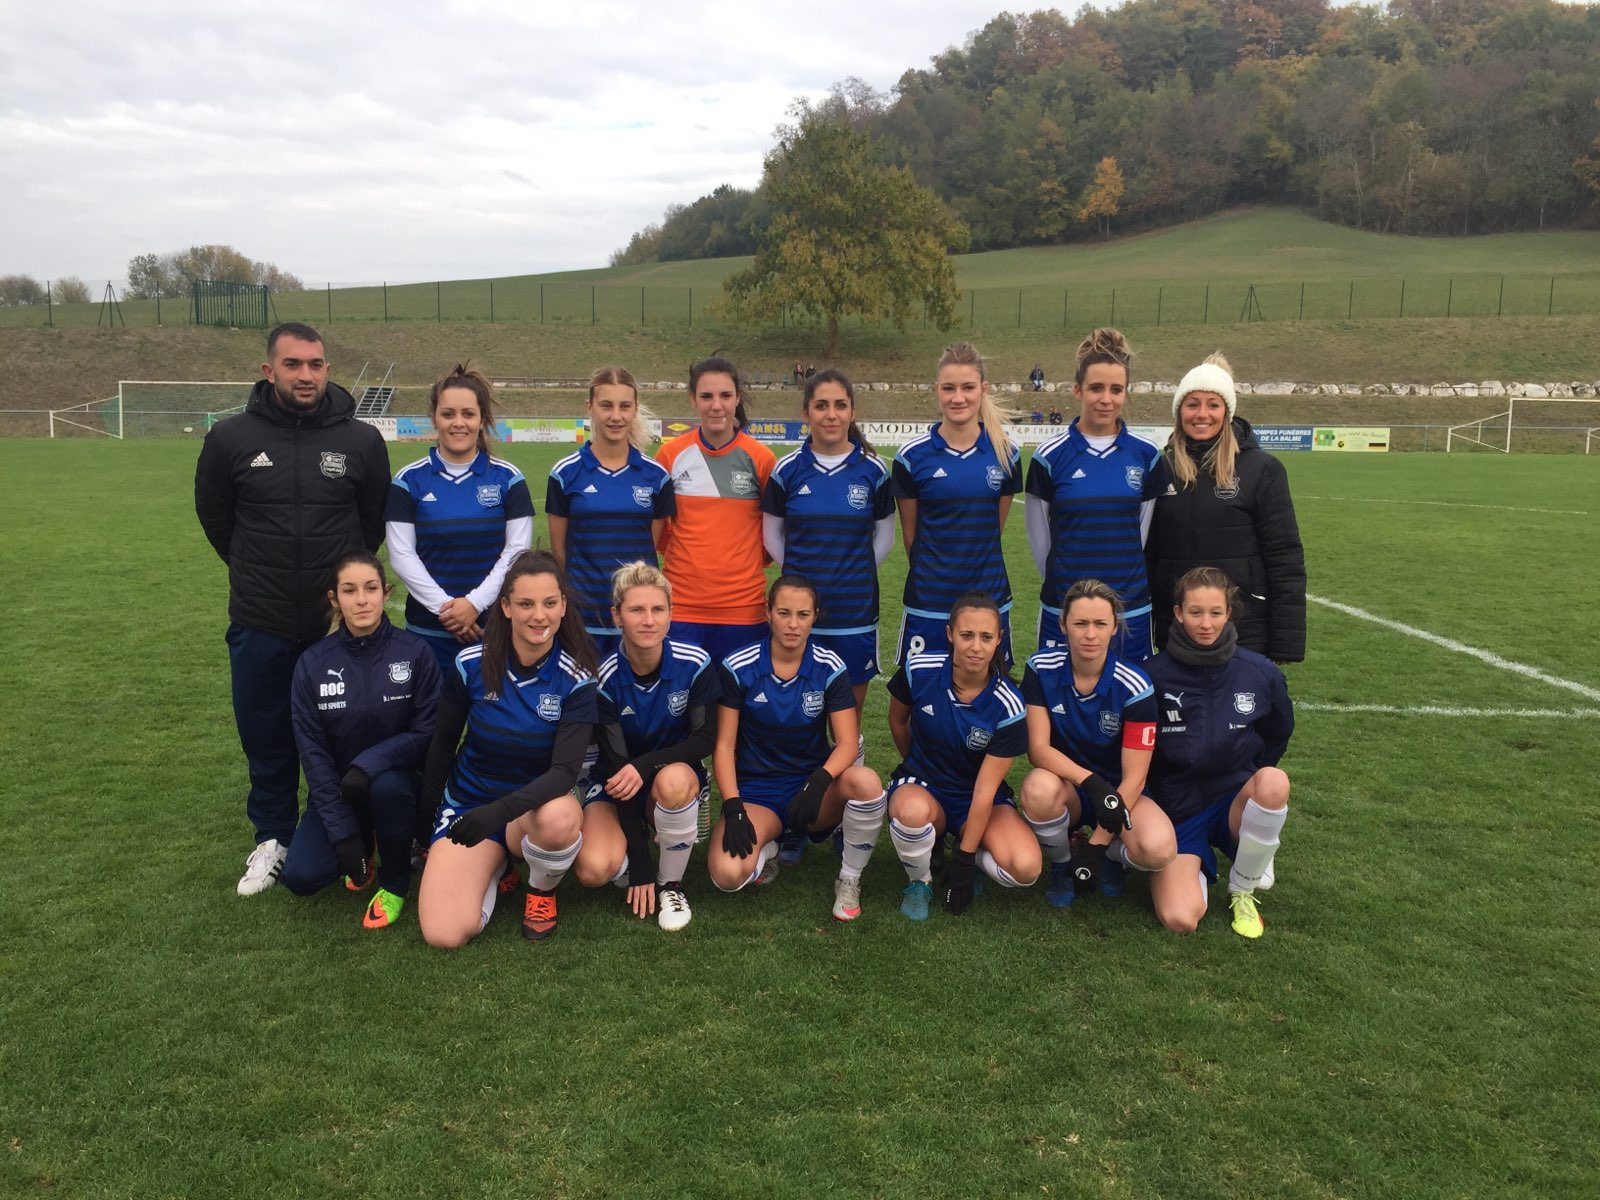 4e tour coupe de France féminine Chilly Chadrac